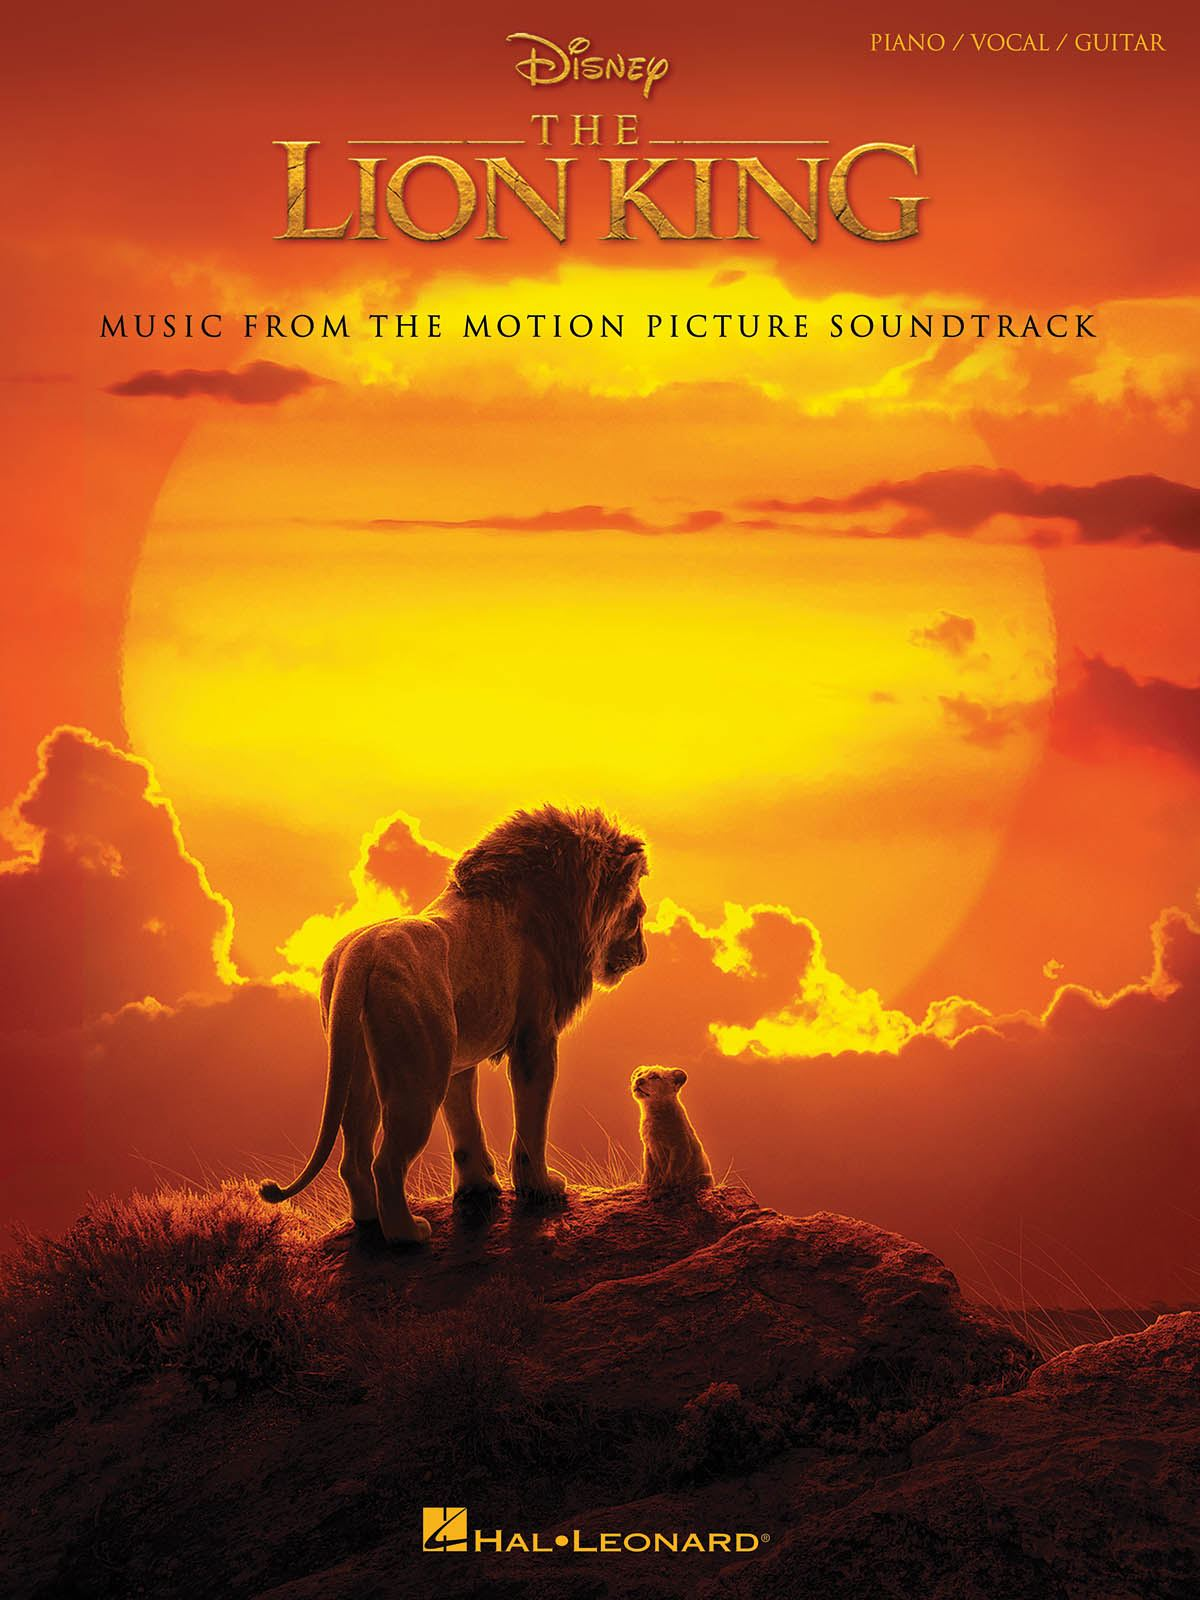 Elton John Tim Rice Hans Zimmer: The Lion King: Piano  Vocal and Guitar: Album